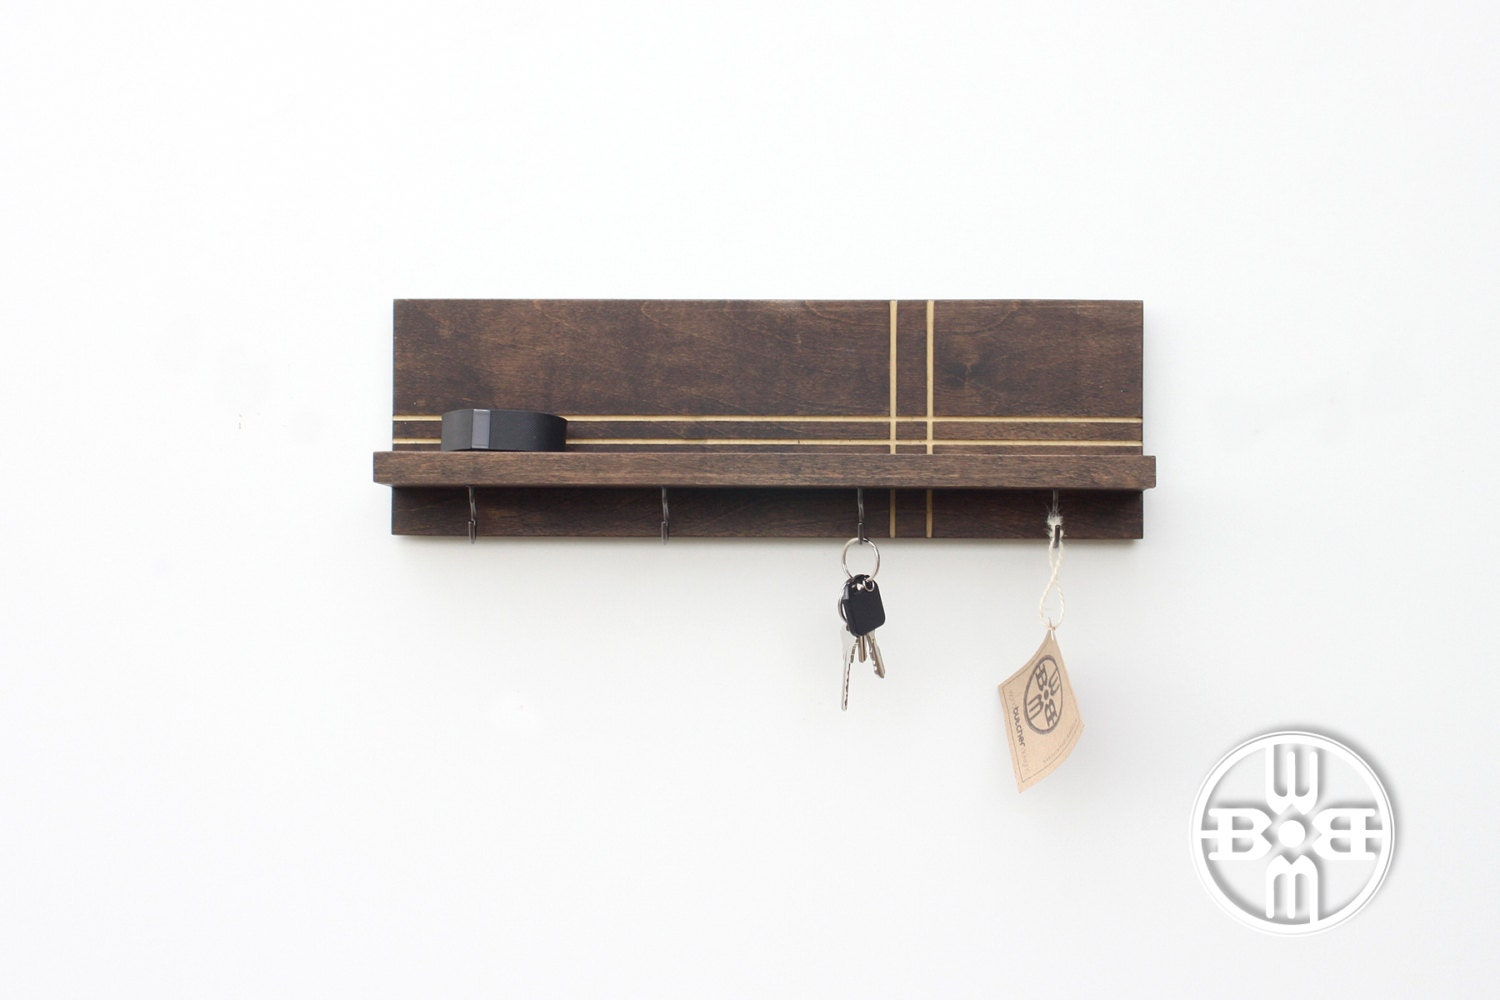 Key holder for wall key holder wood shelf key rack shelf - Key racks for wall ...